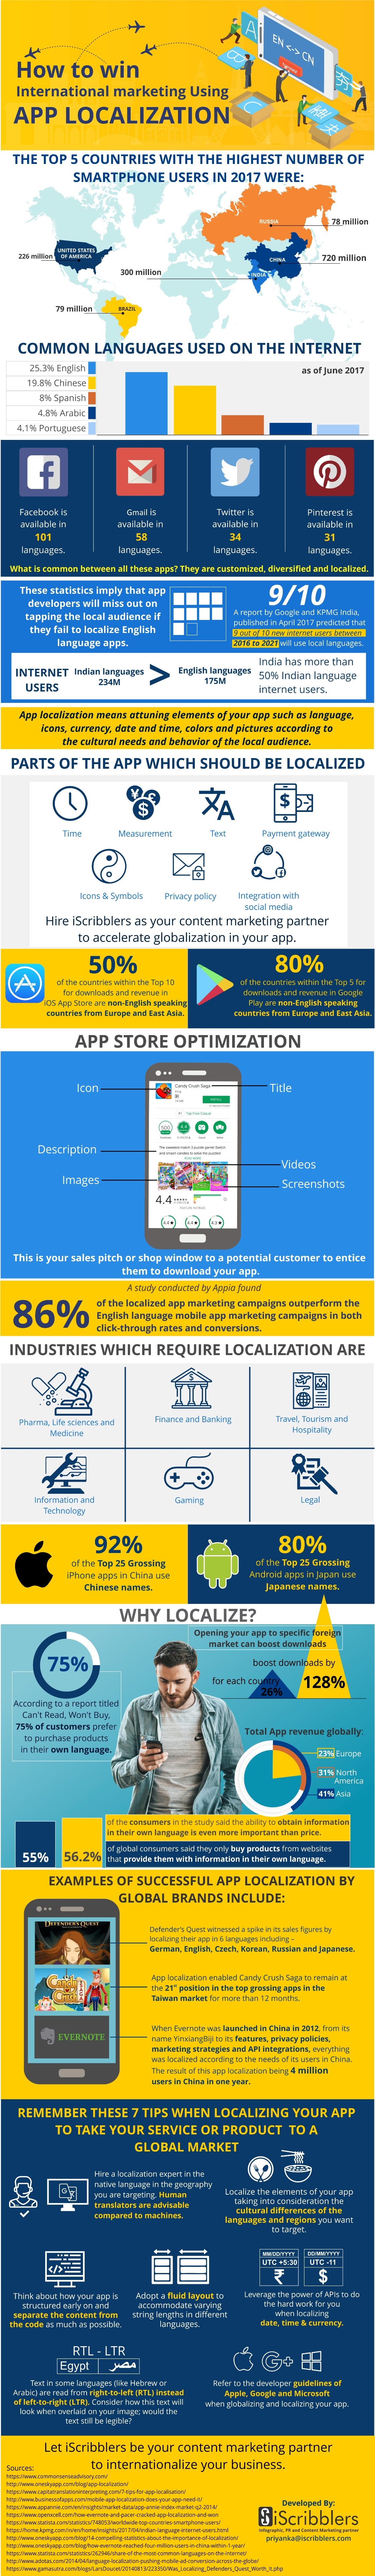 Infographic: How To Win International Marketing Using App Localization